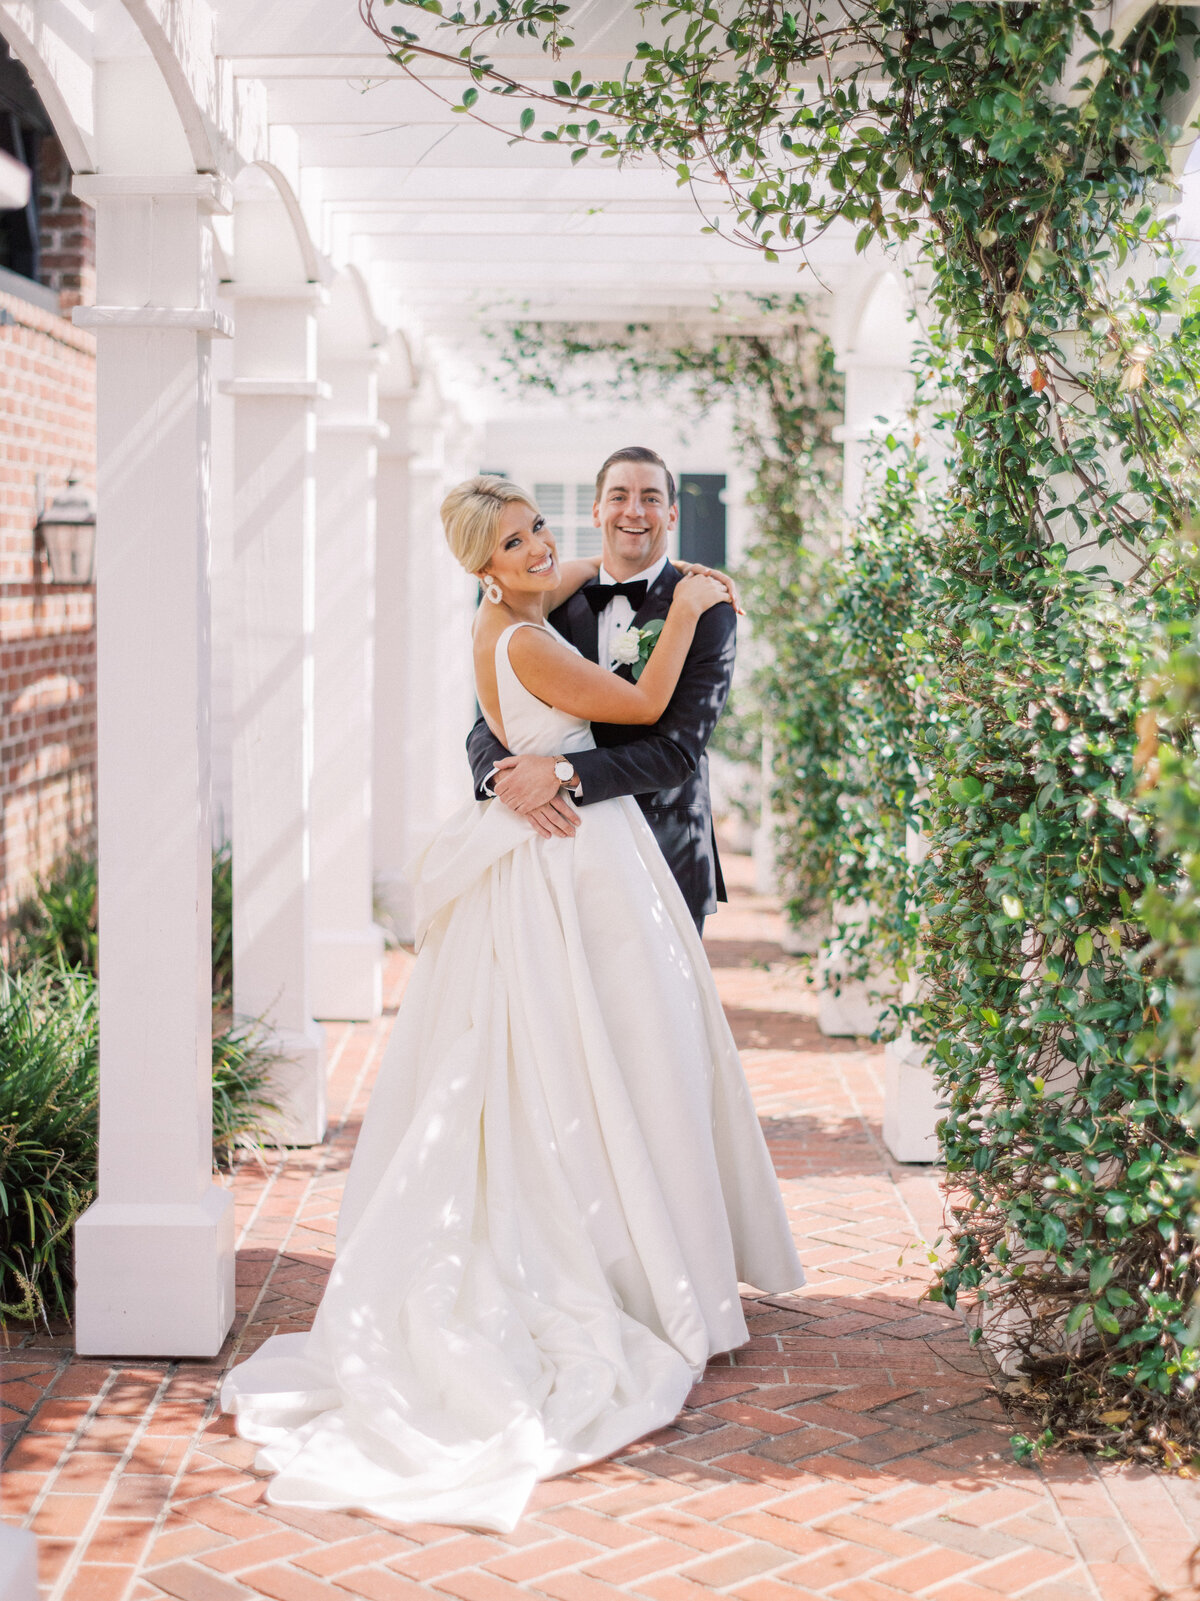 Belfair-Plantation-Bluffton-Hilton-Head-Island-Wedding-Philip-Casey-Photo-13